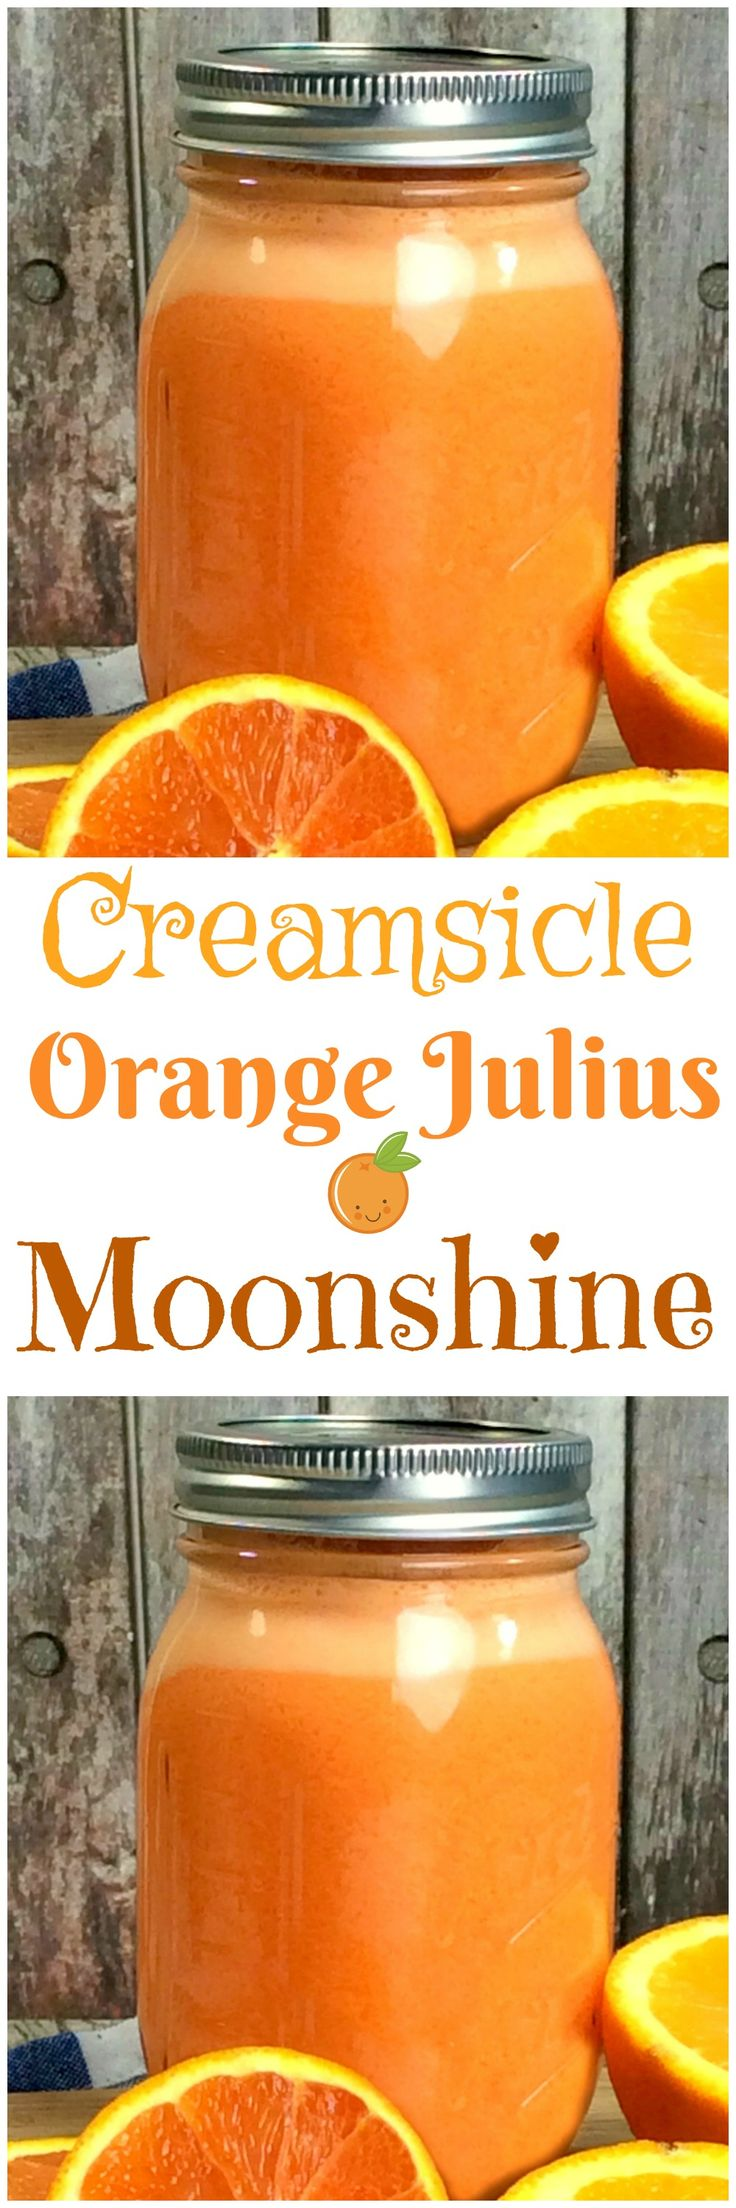 Orange Creamsicle MOONSHINE!